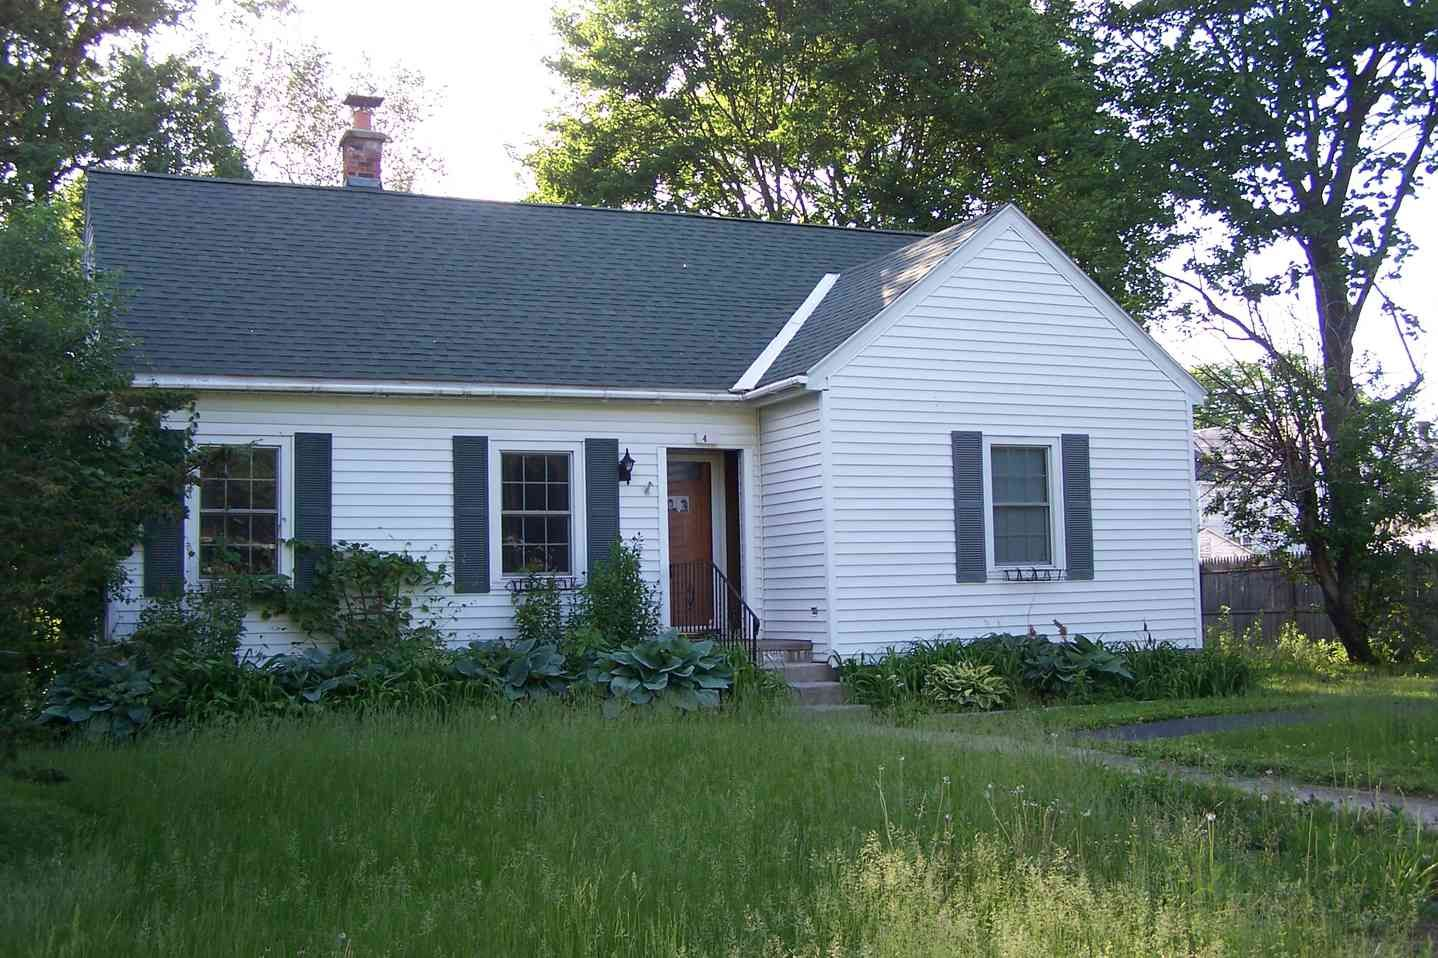 American Homes Architecture From 1930 To 1965 Affordable House Plans House Designs Exterior House Exterior